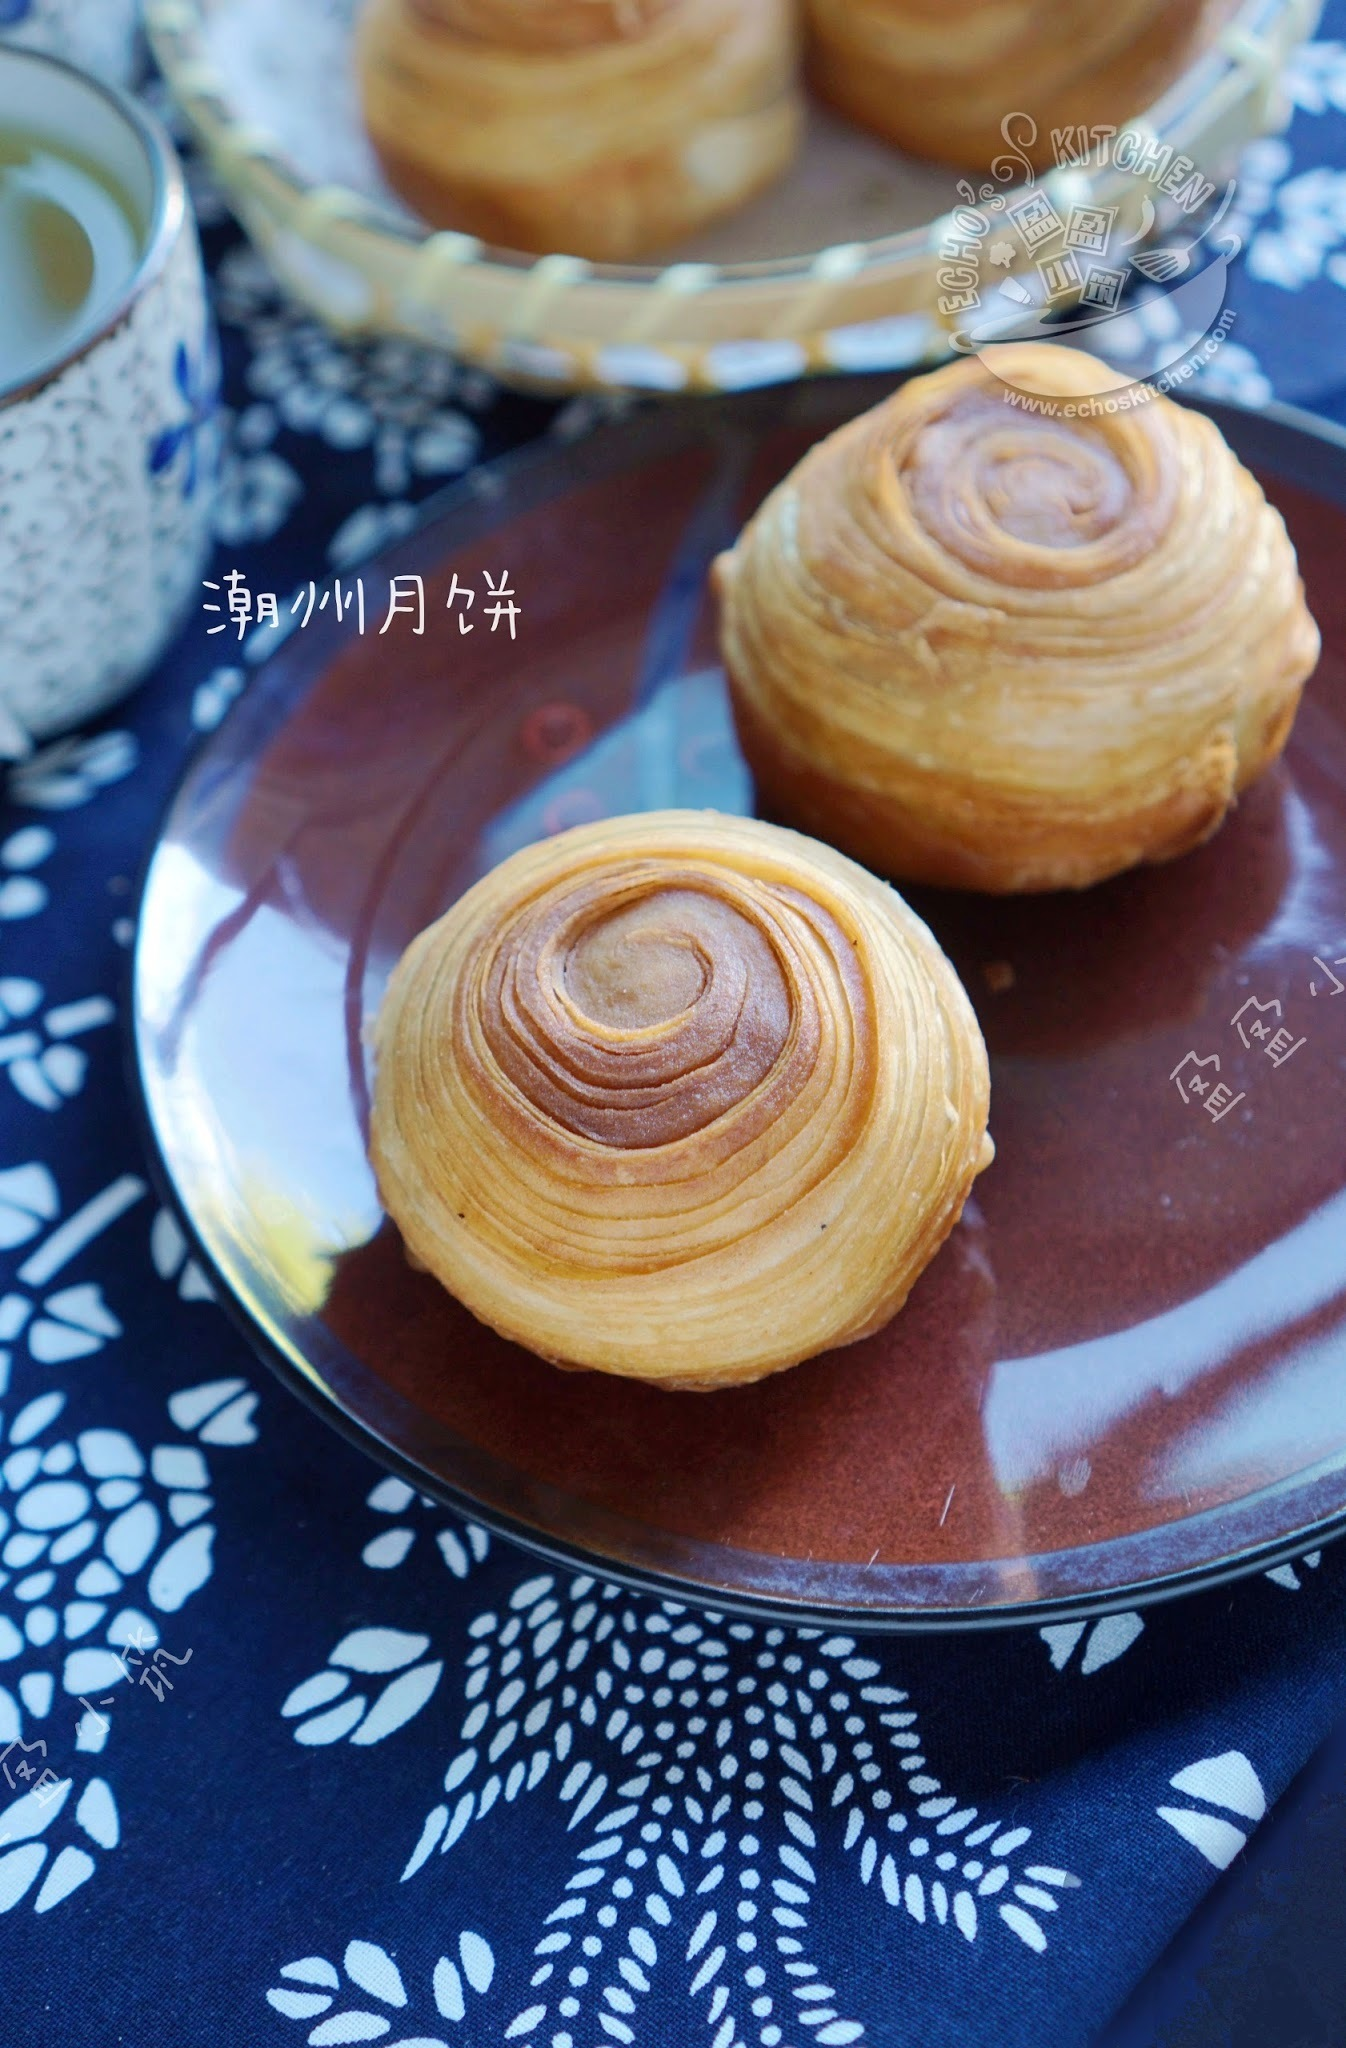 Teochew Mooncake (With Yam and Pumpkin Fillings) 潮州芋头南瓜月饼